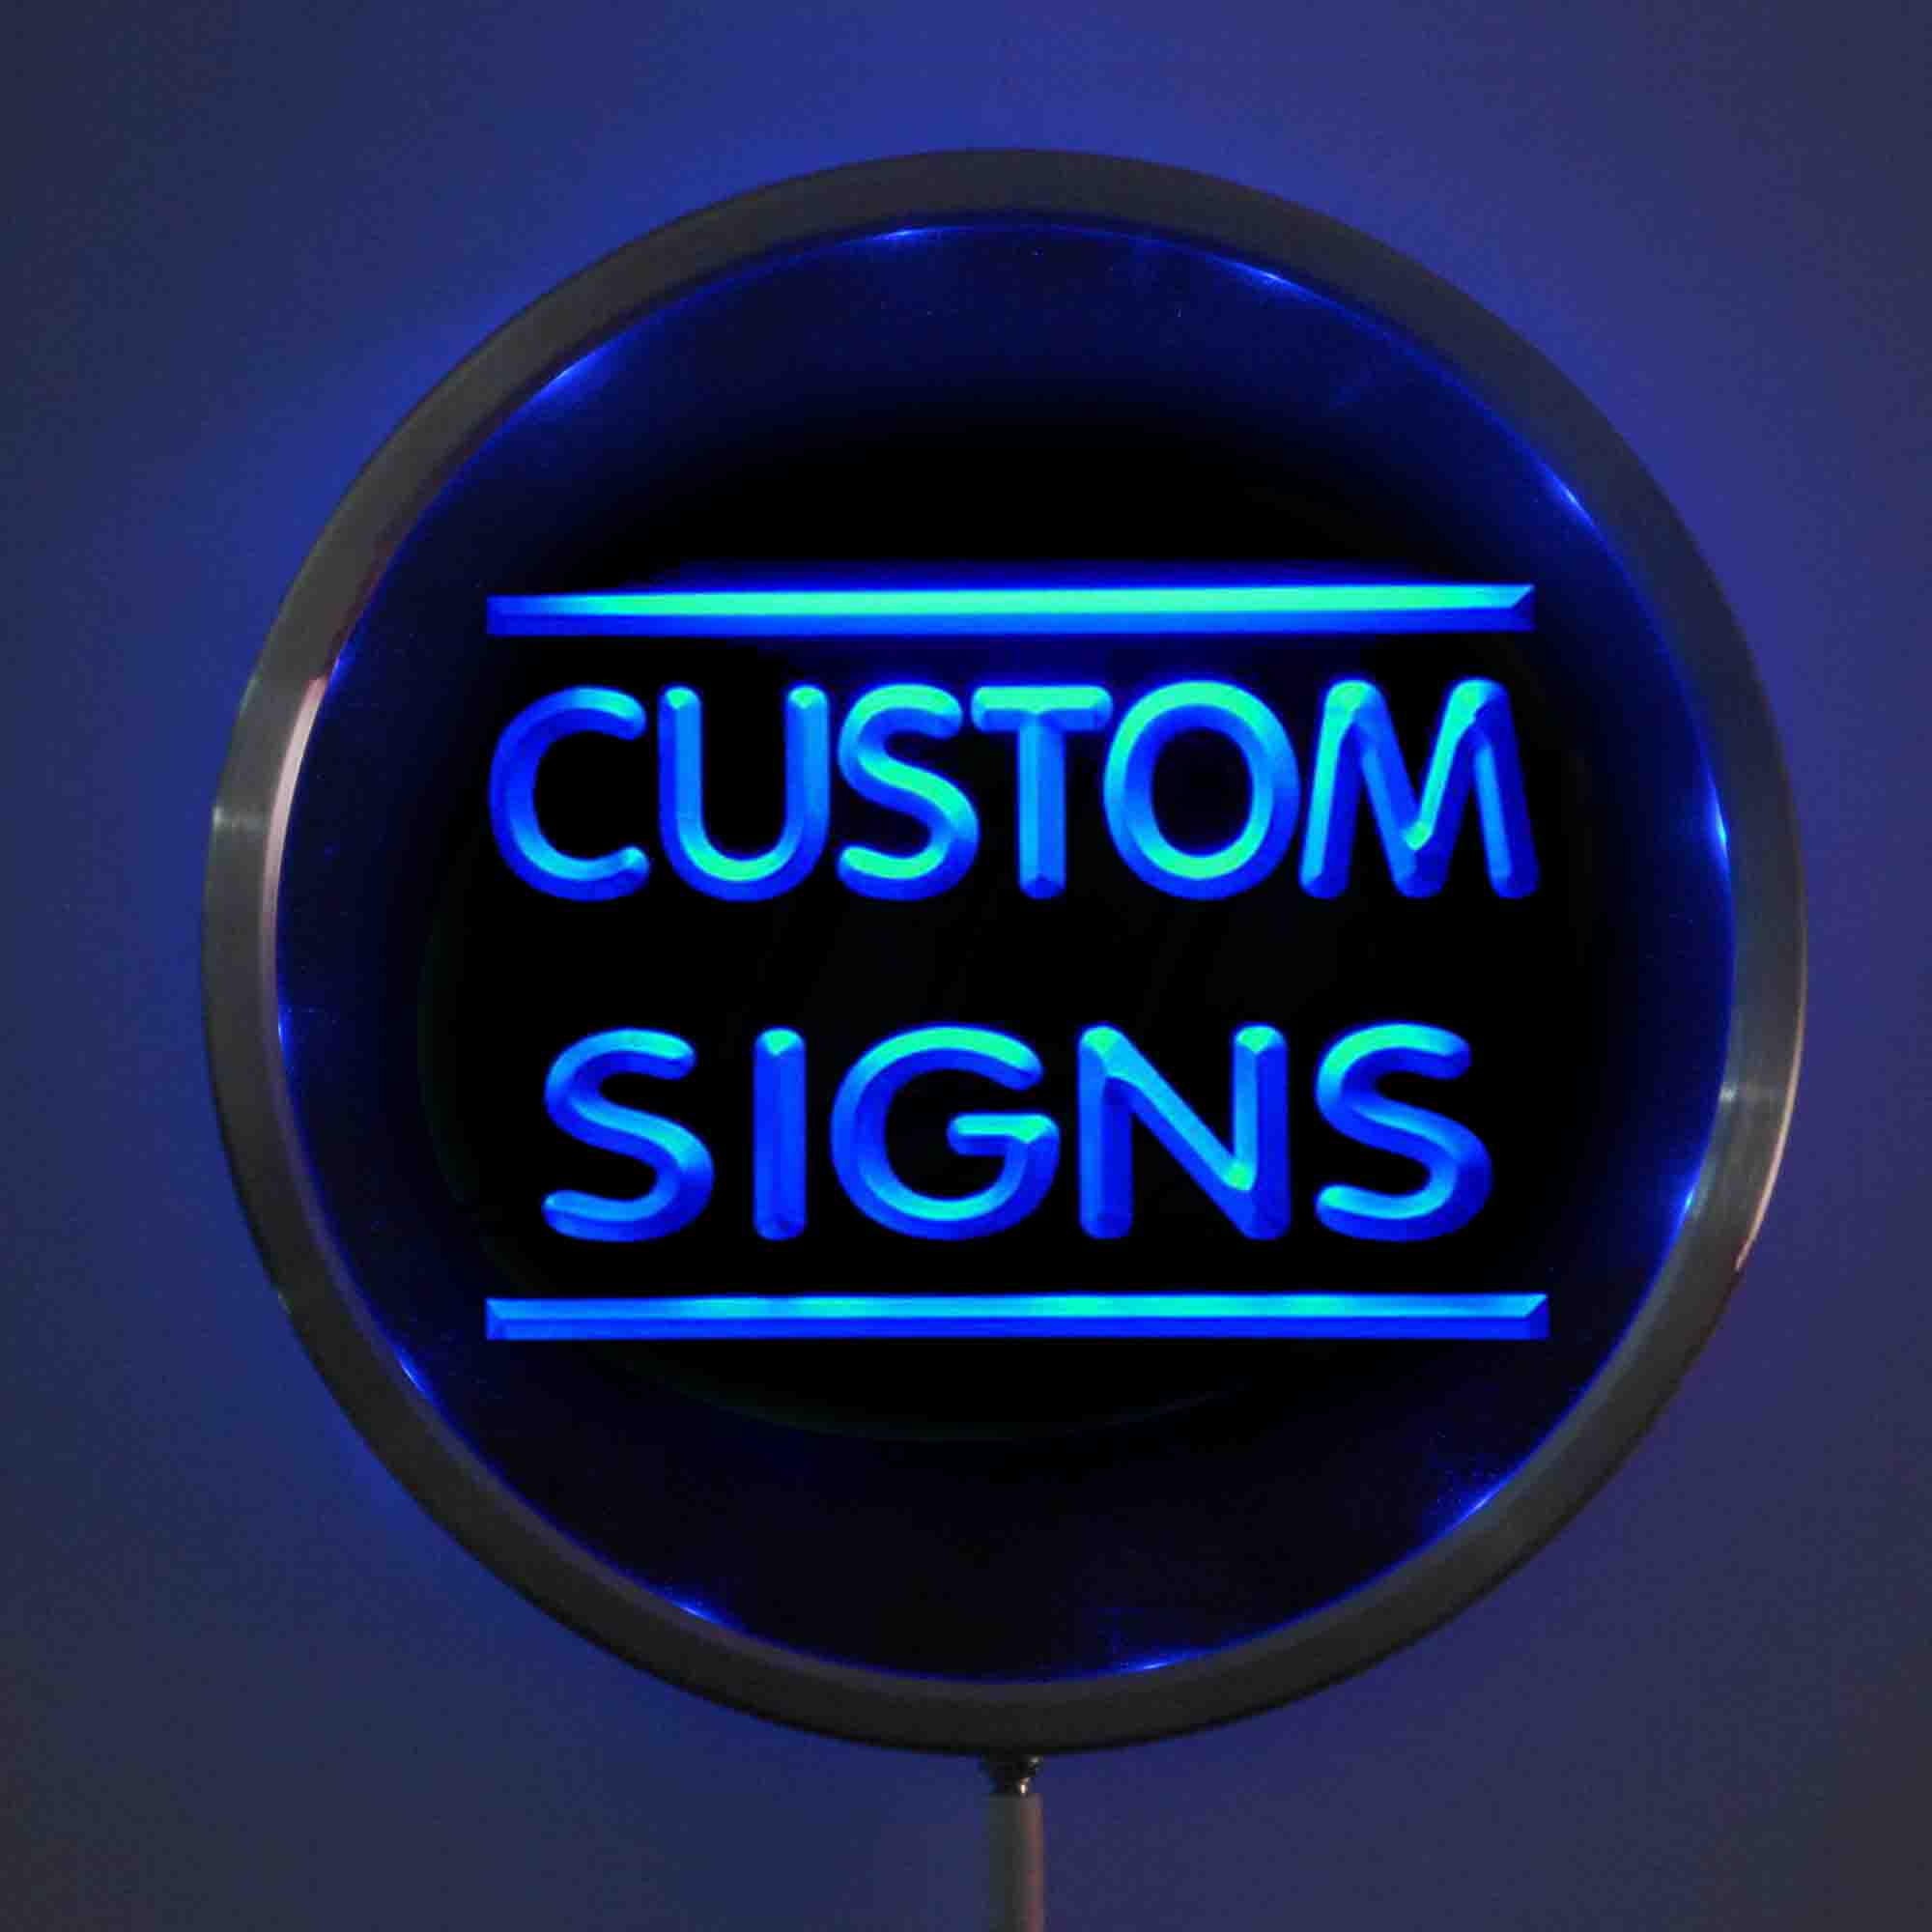 Round Custom LED Neon Signs 25cm/ 10 Inch - Design Your Own Circle LED Signs With RGB Multi-Color Remote Wireless Control ...